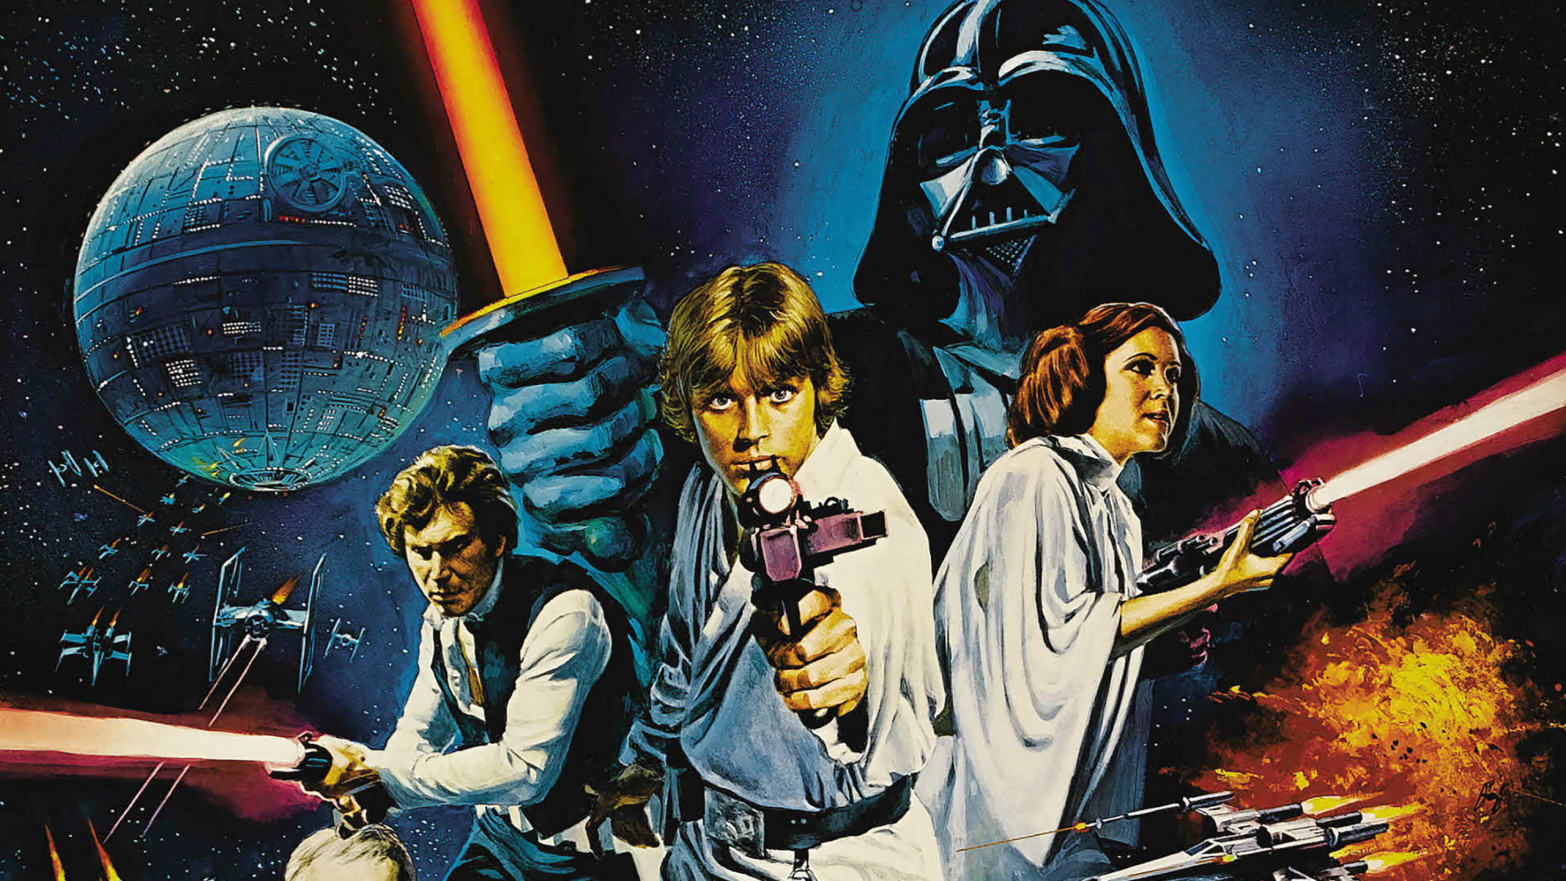 20 Star Wars Secrets Revealed: From Leia's 'Cocaine Nail' to the